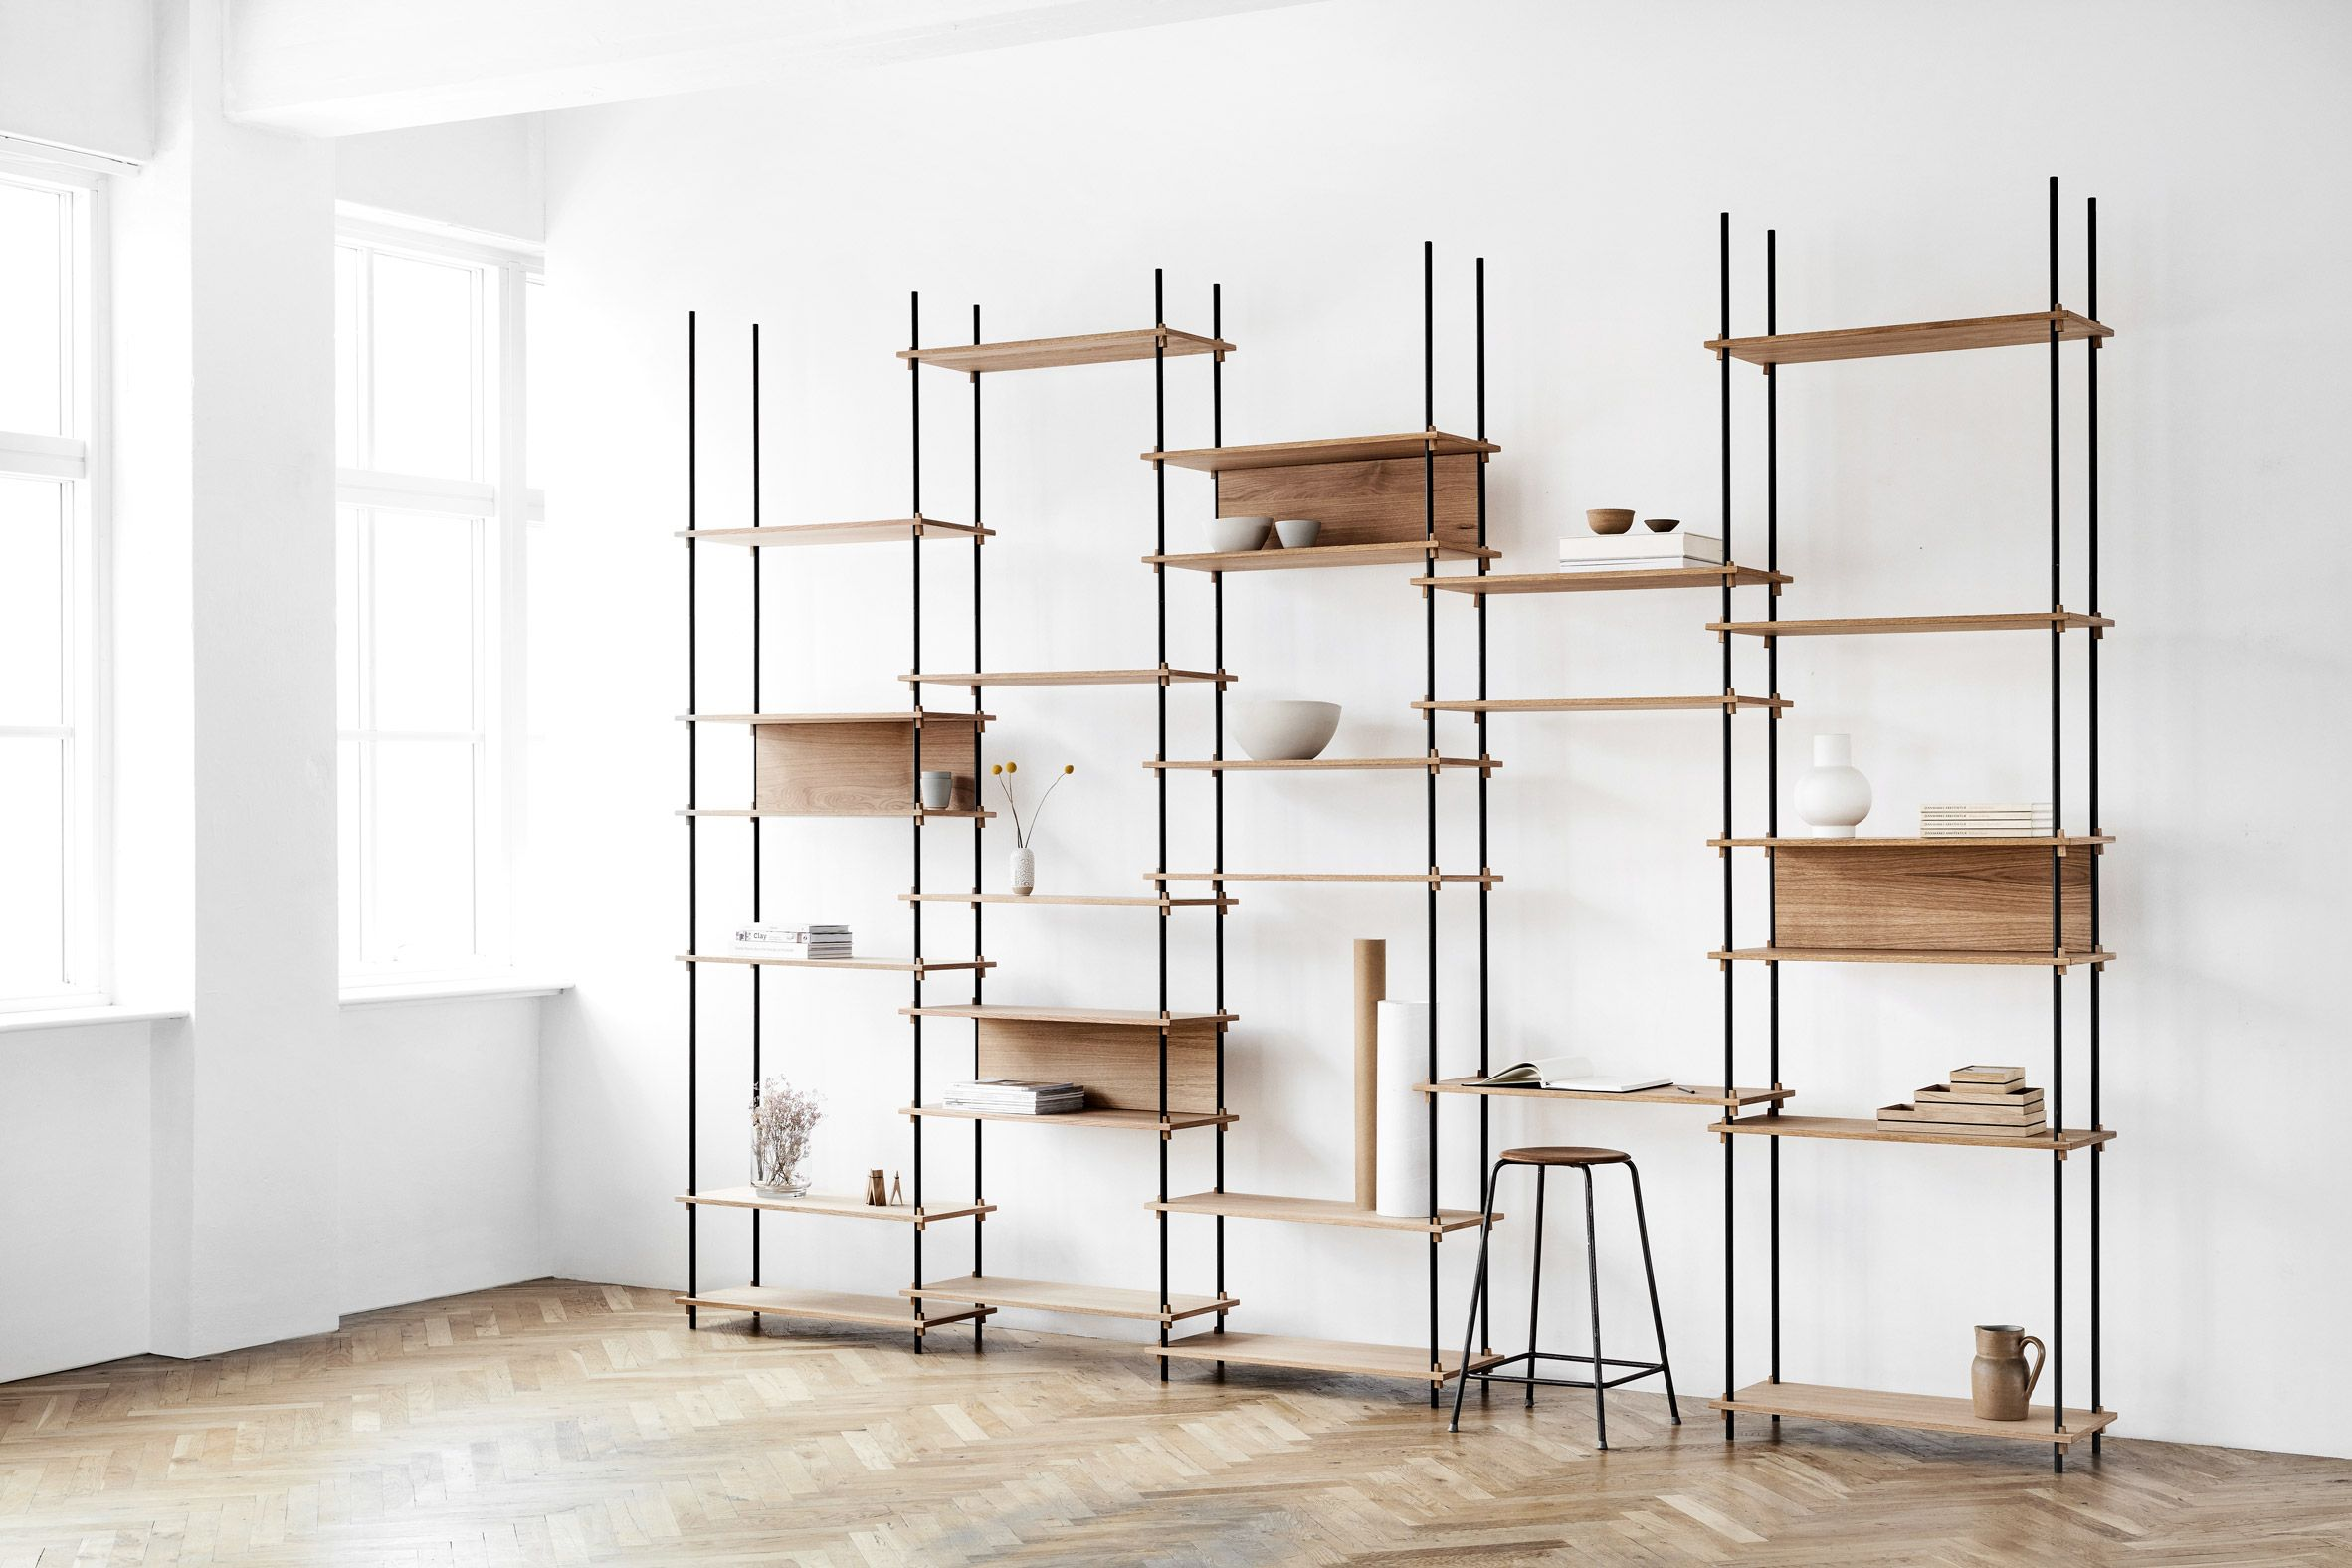 Moebe Creates Flexible Shelving System That Is Held Together By